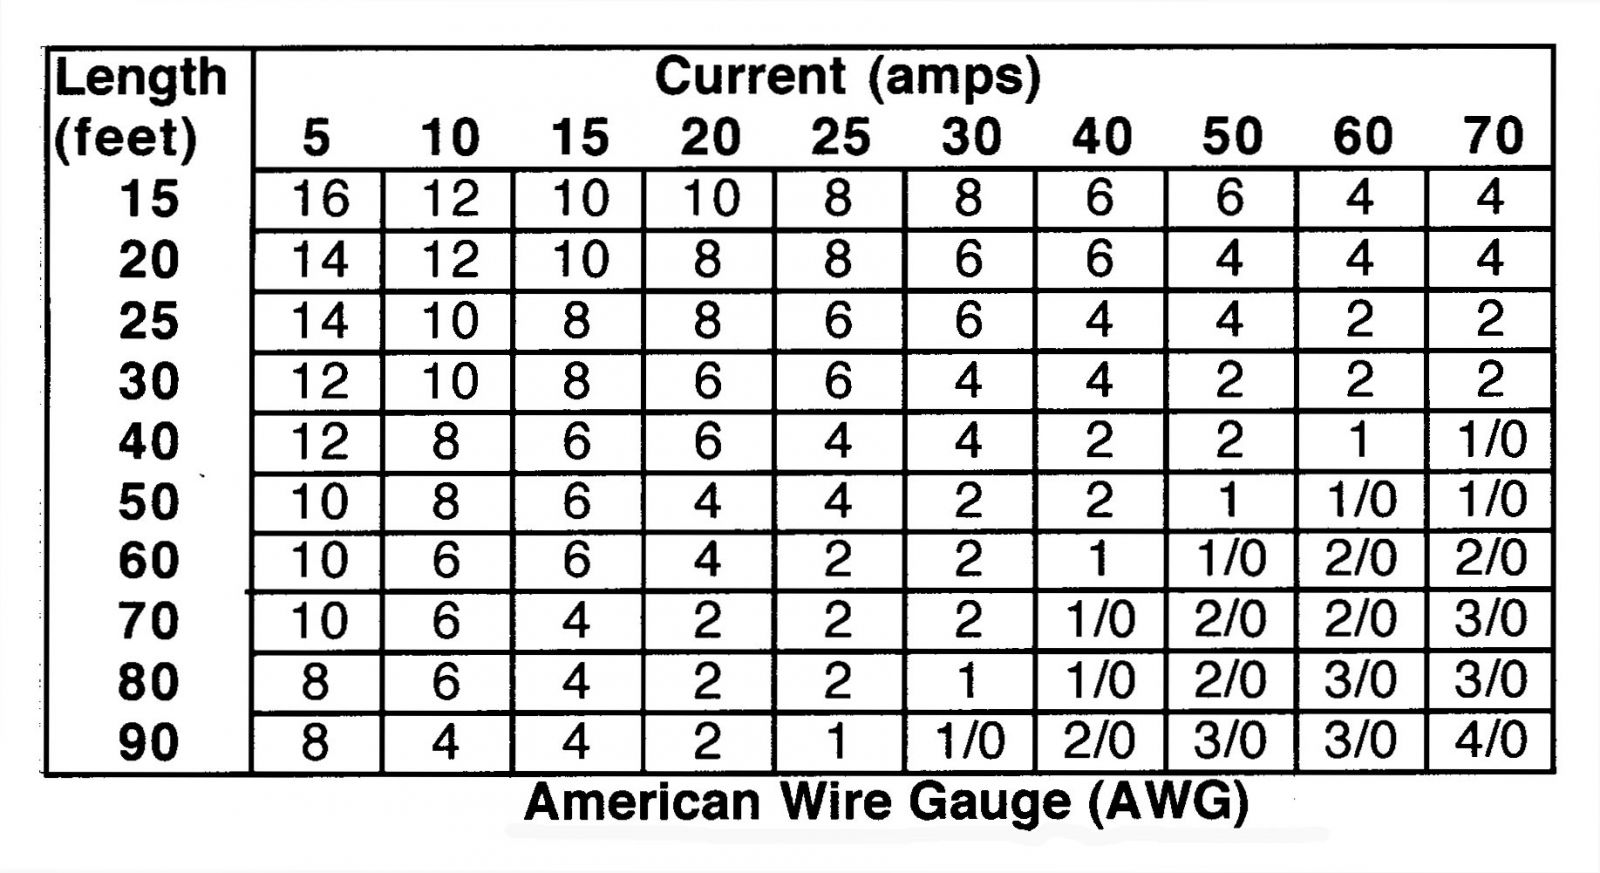 12 volt wire size chart dolapgnetband 12 volt wire size chart greentooth Image collections